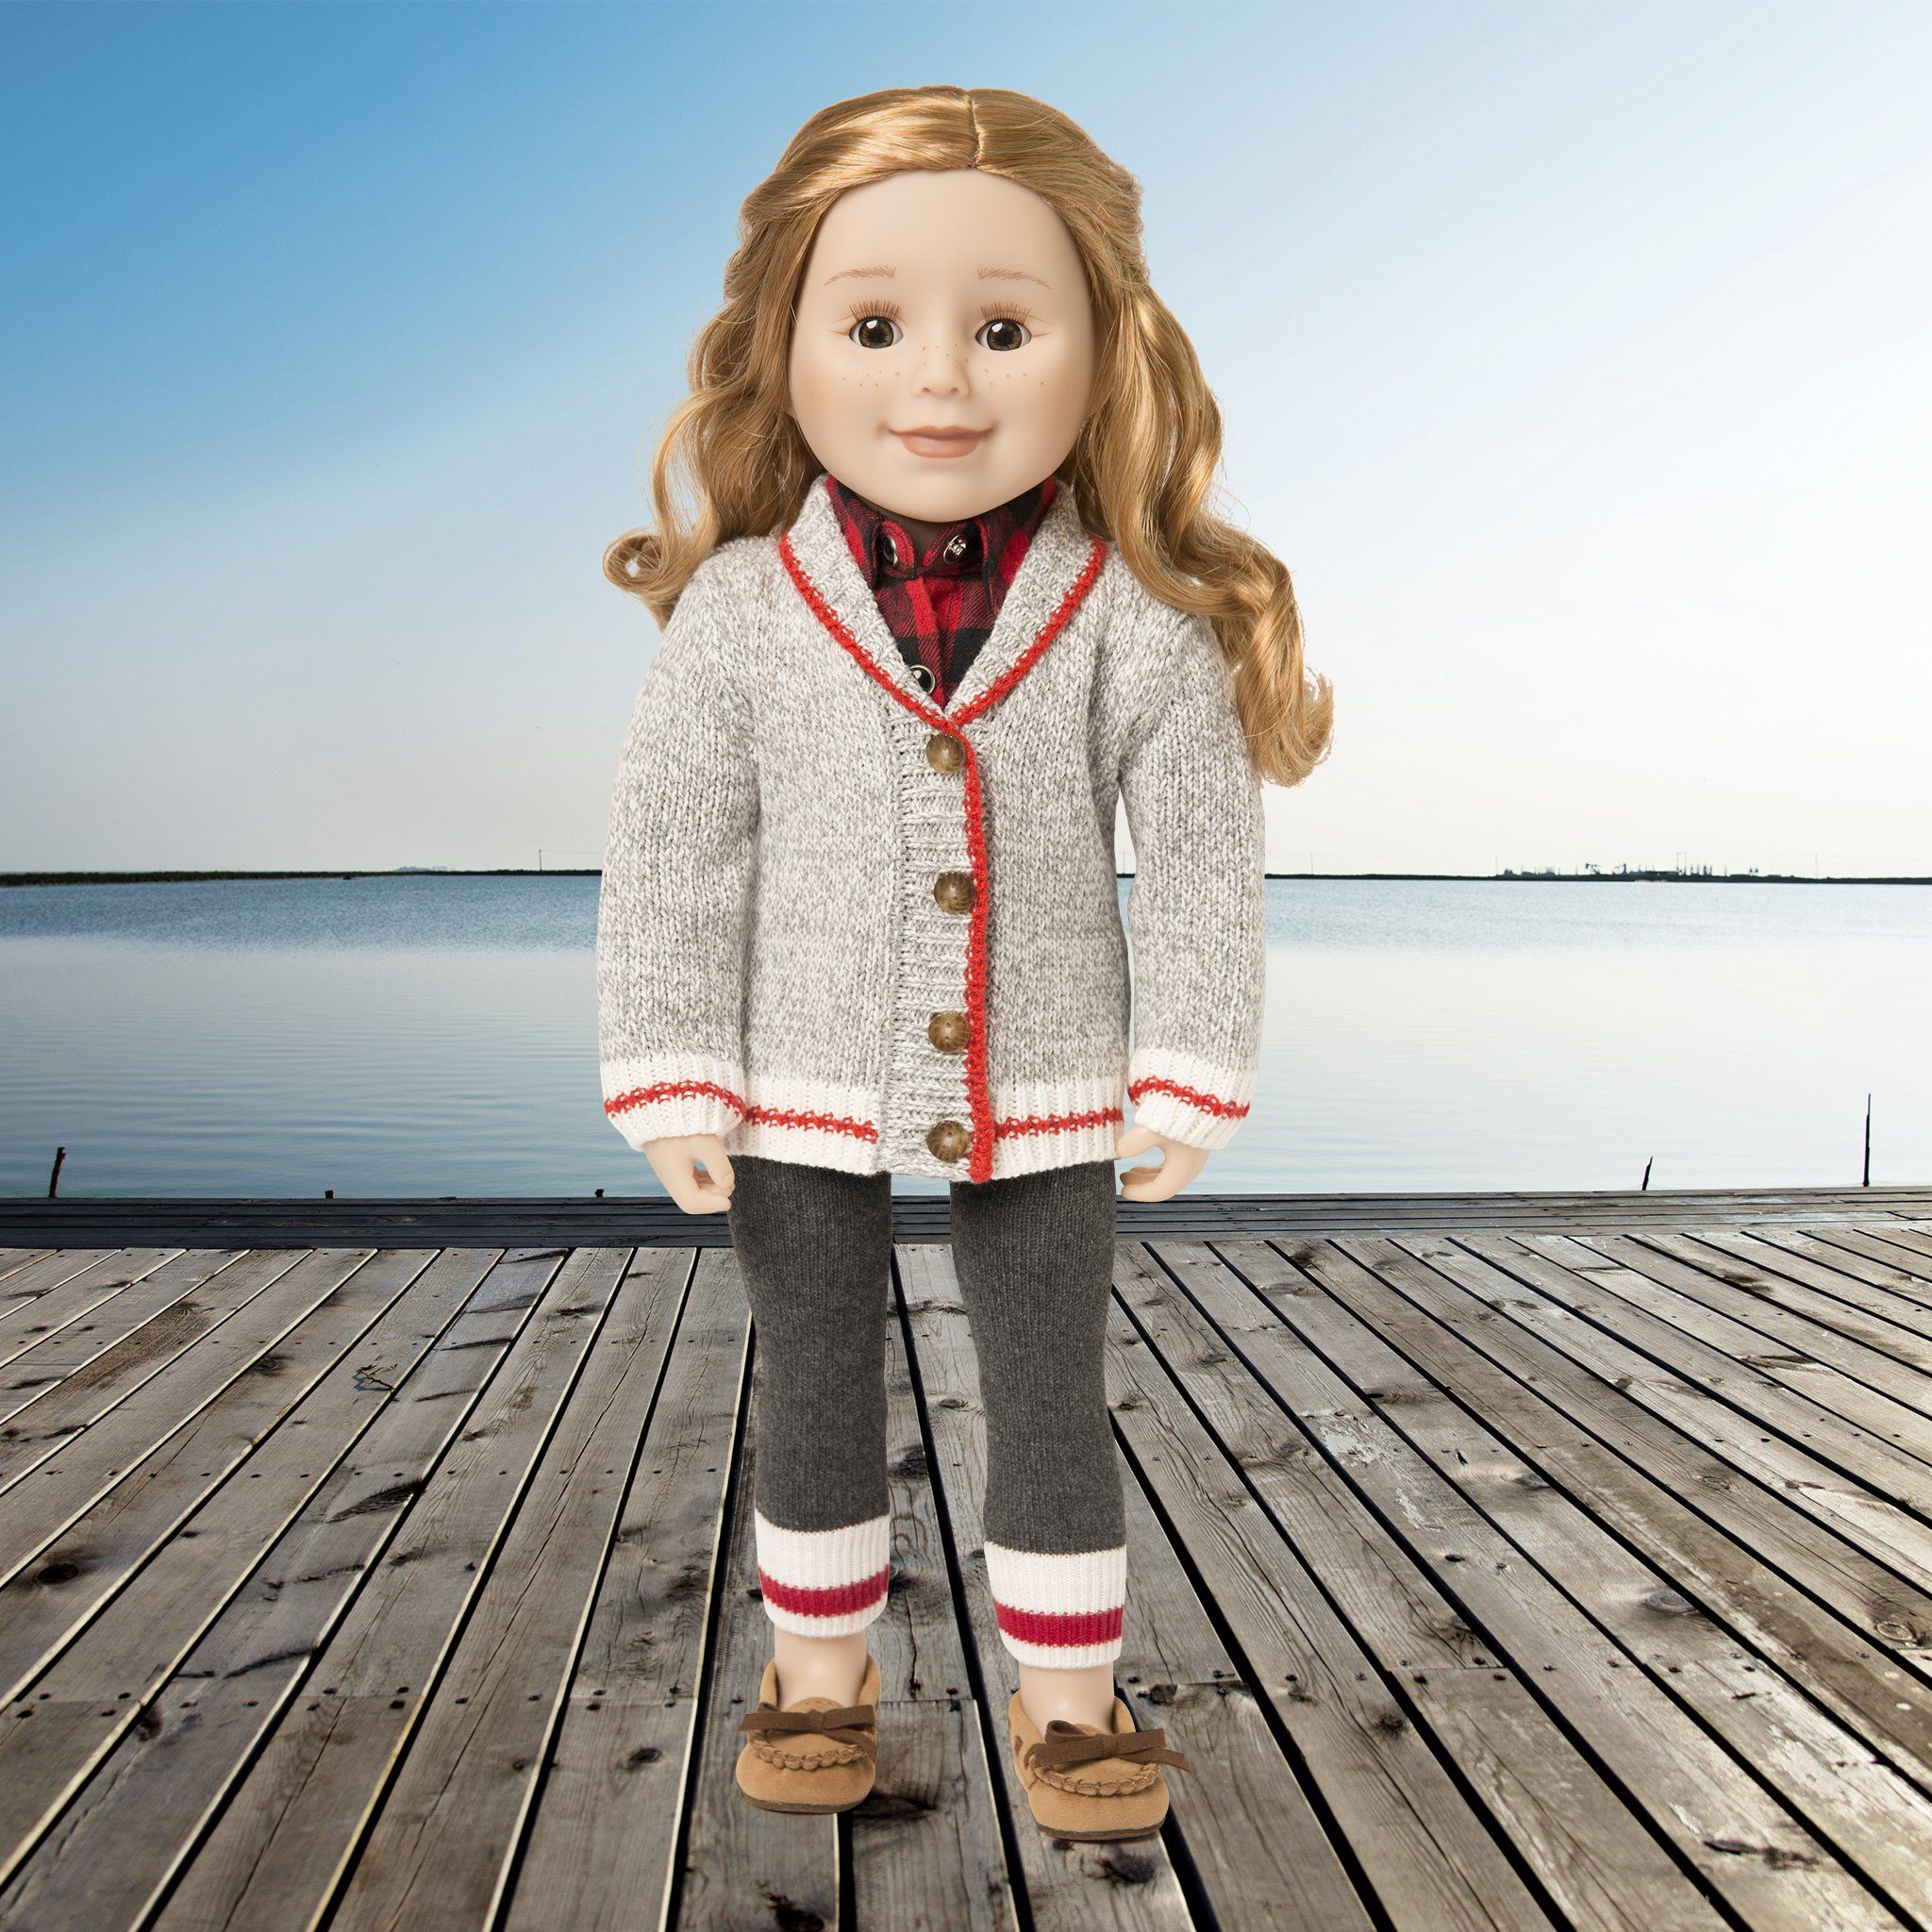 Doll showing her Canadian roots by wearing a classic red and grey sweater cardigan